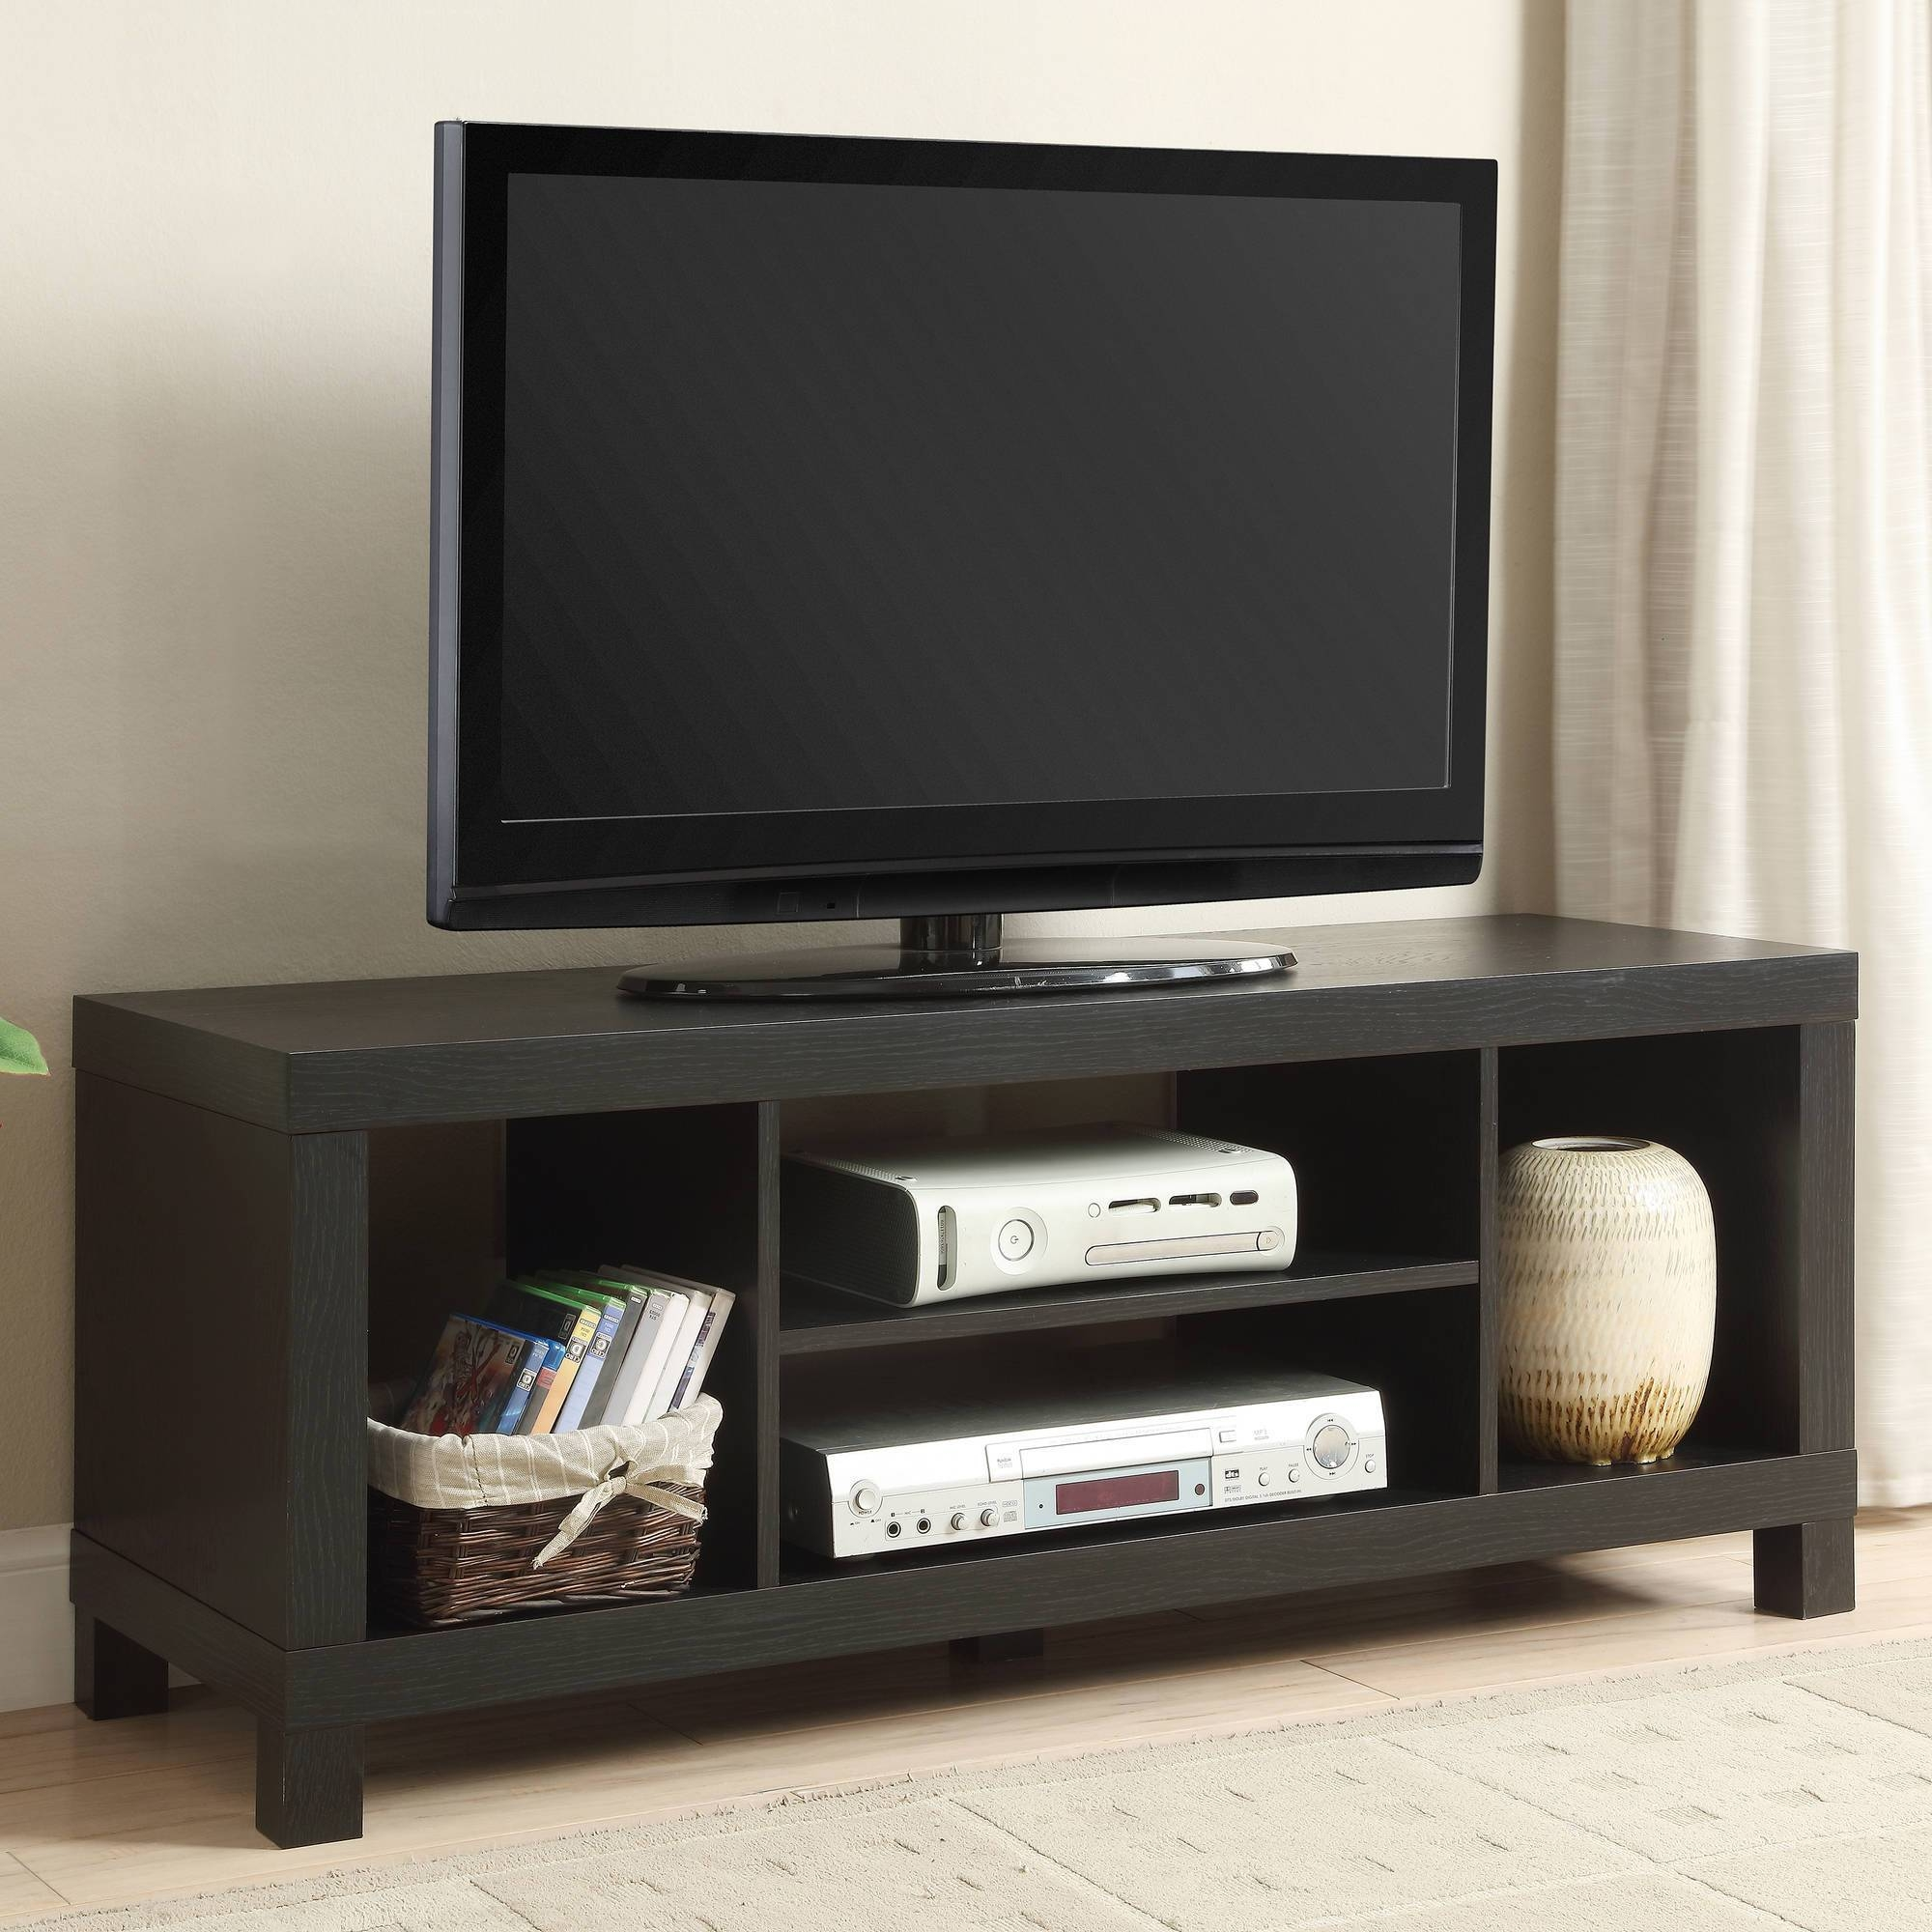 Tv Stands - Walmart intended for Como Tv Stands (Image 13 of 15)